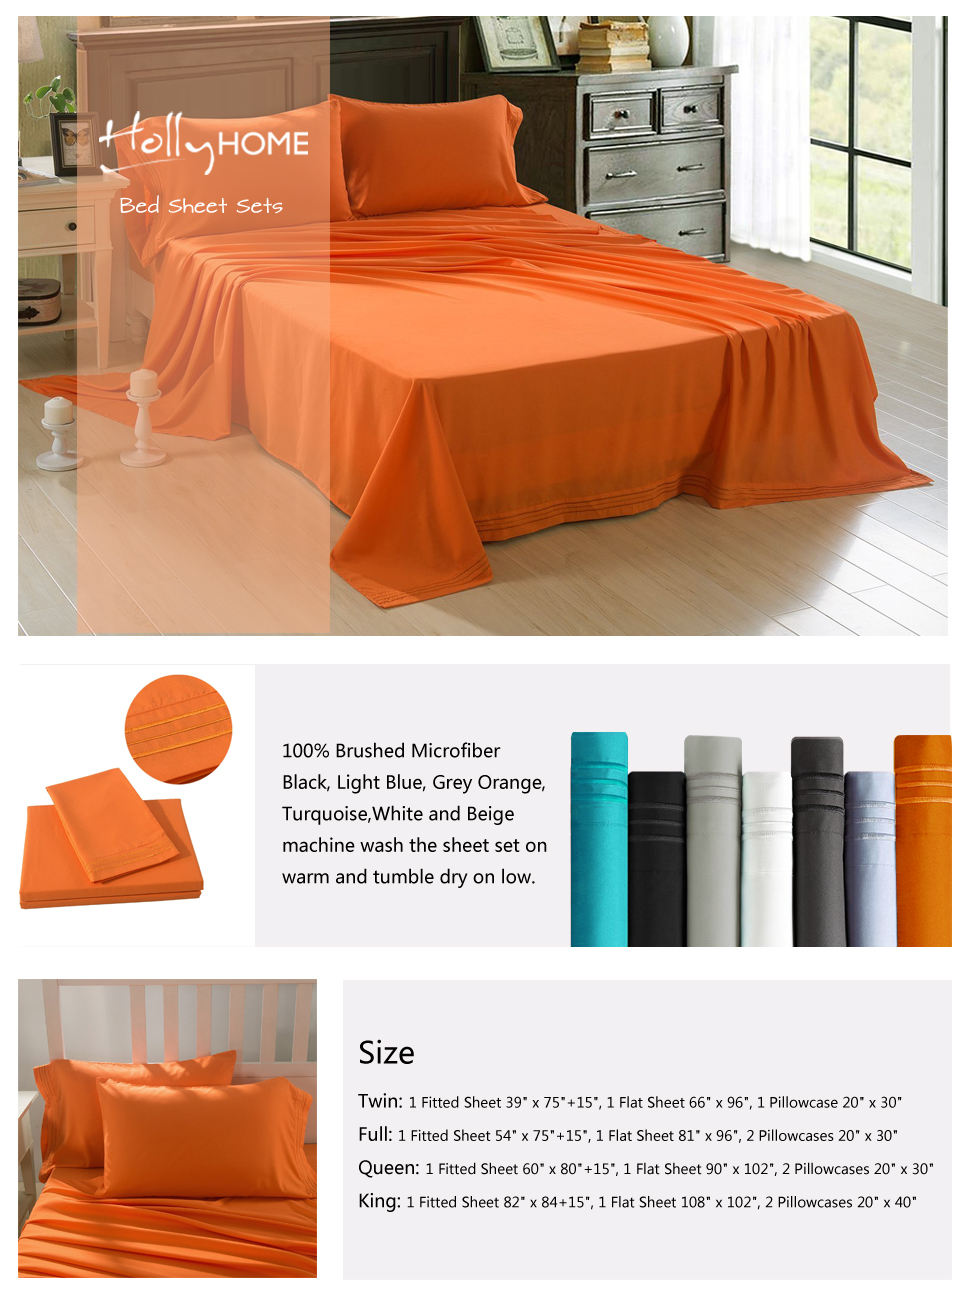 HollyHOME Collection 4 Pieces Ultra Soft Embroidered Bed Sheet Sets Orange